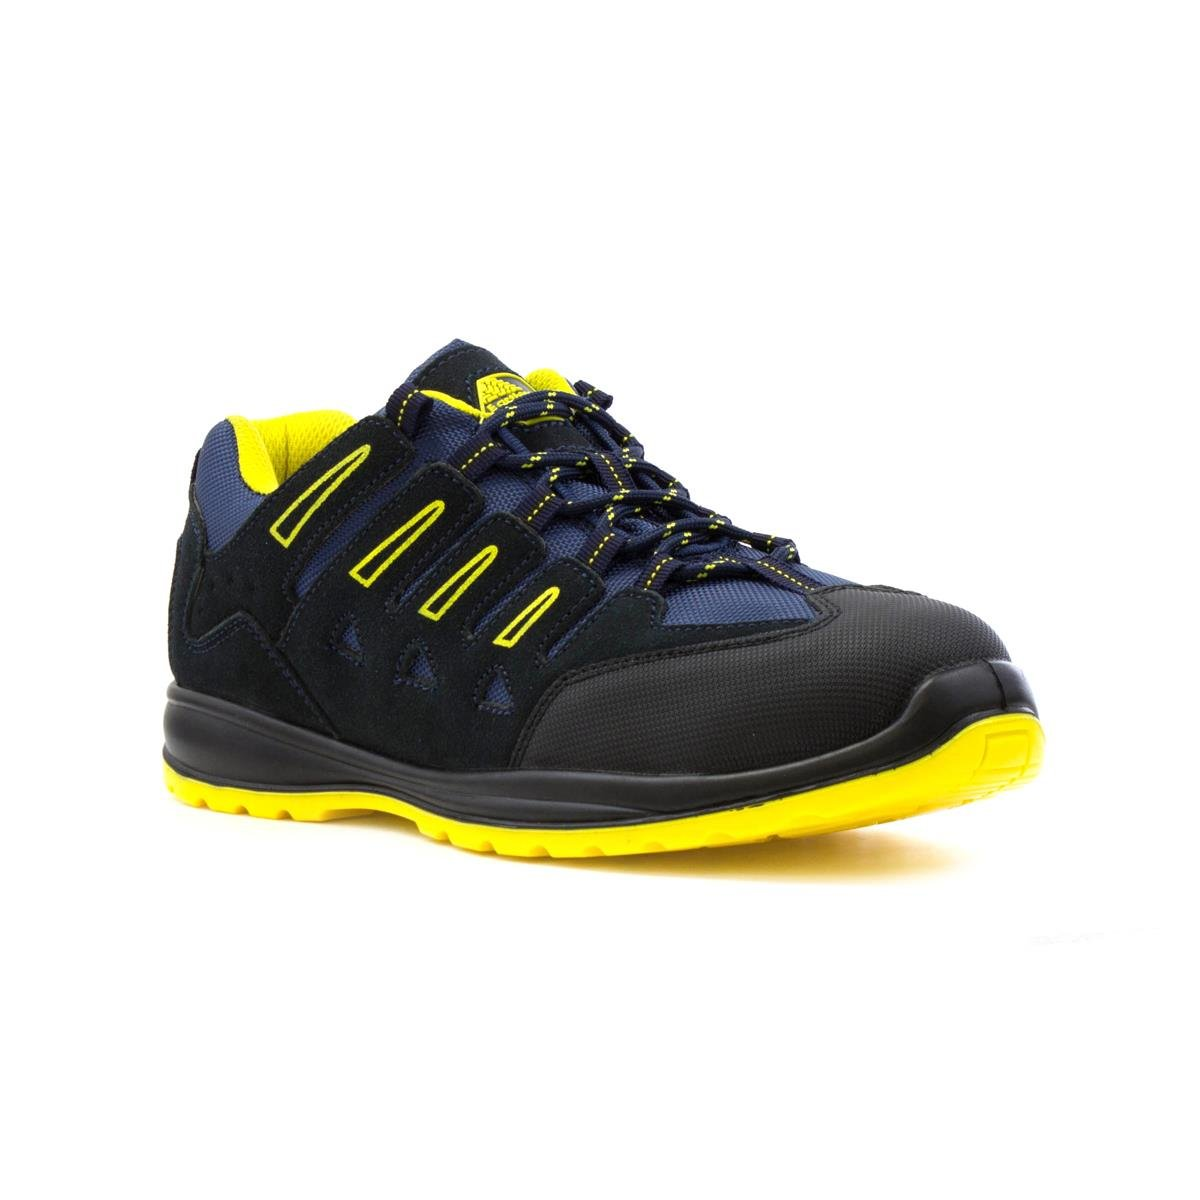 5787c217b95 Earth Works Safety - Earthworks Mens Navy Lace Up Safety Shoe - Size ...